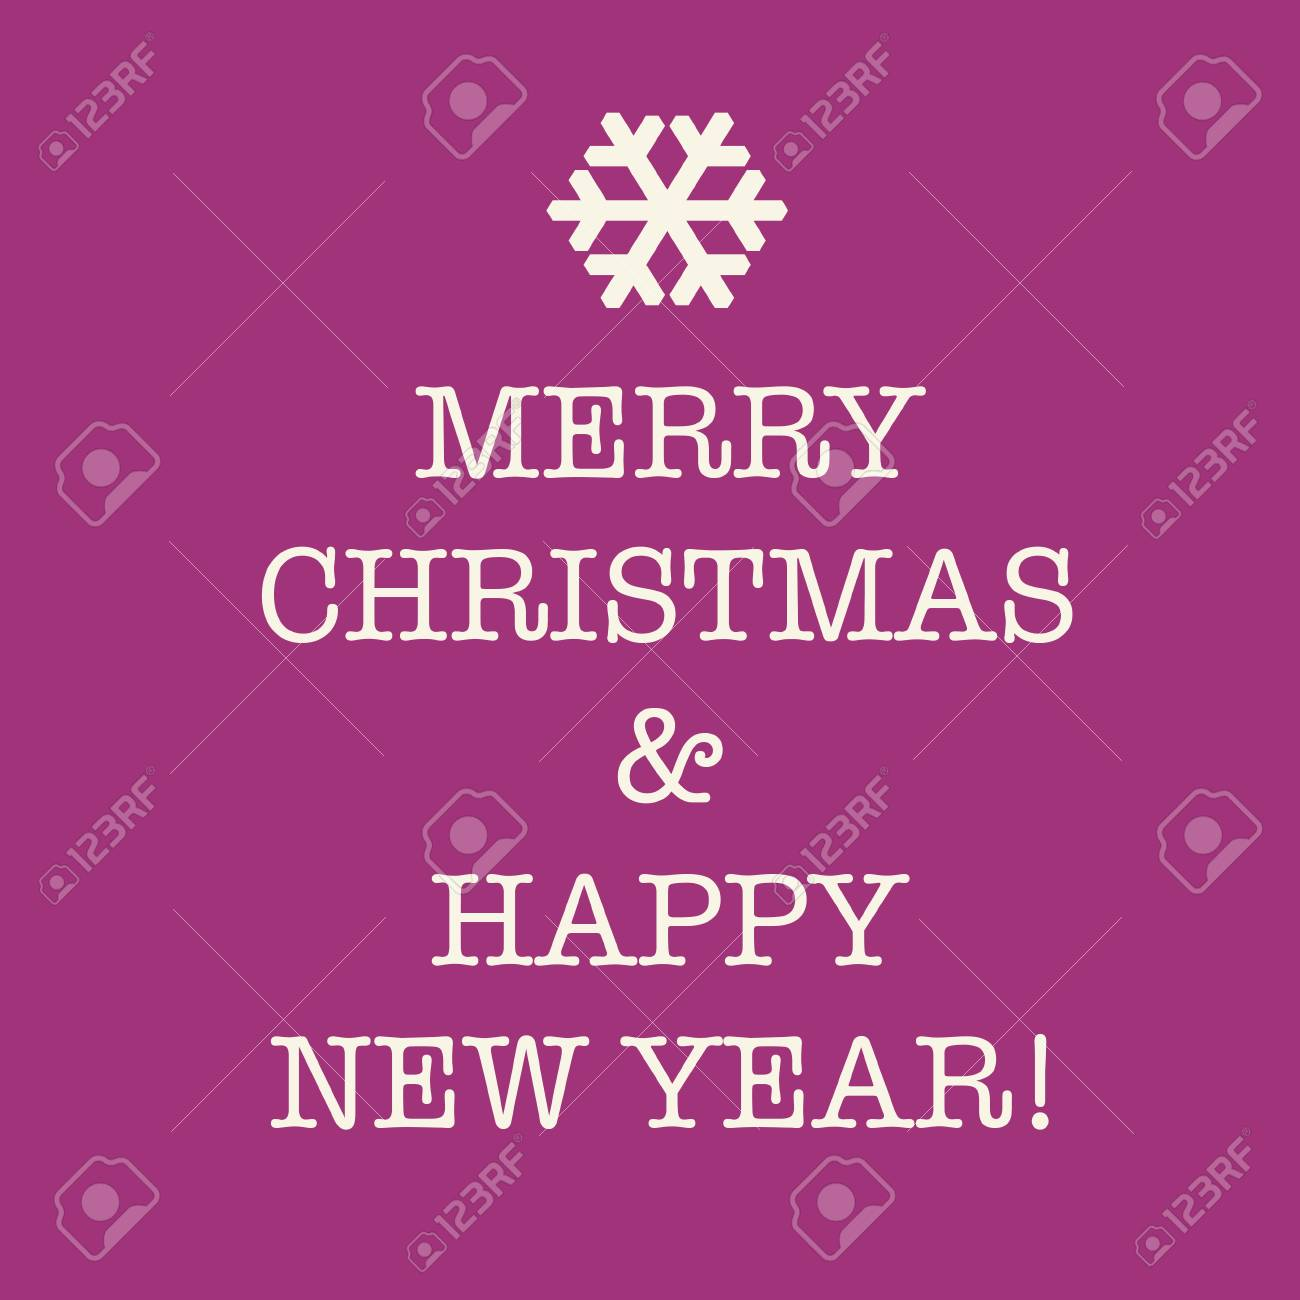 purple pink merry christmas and happy new year greeting card with a snowflake stock photo